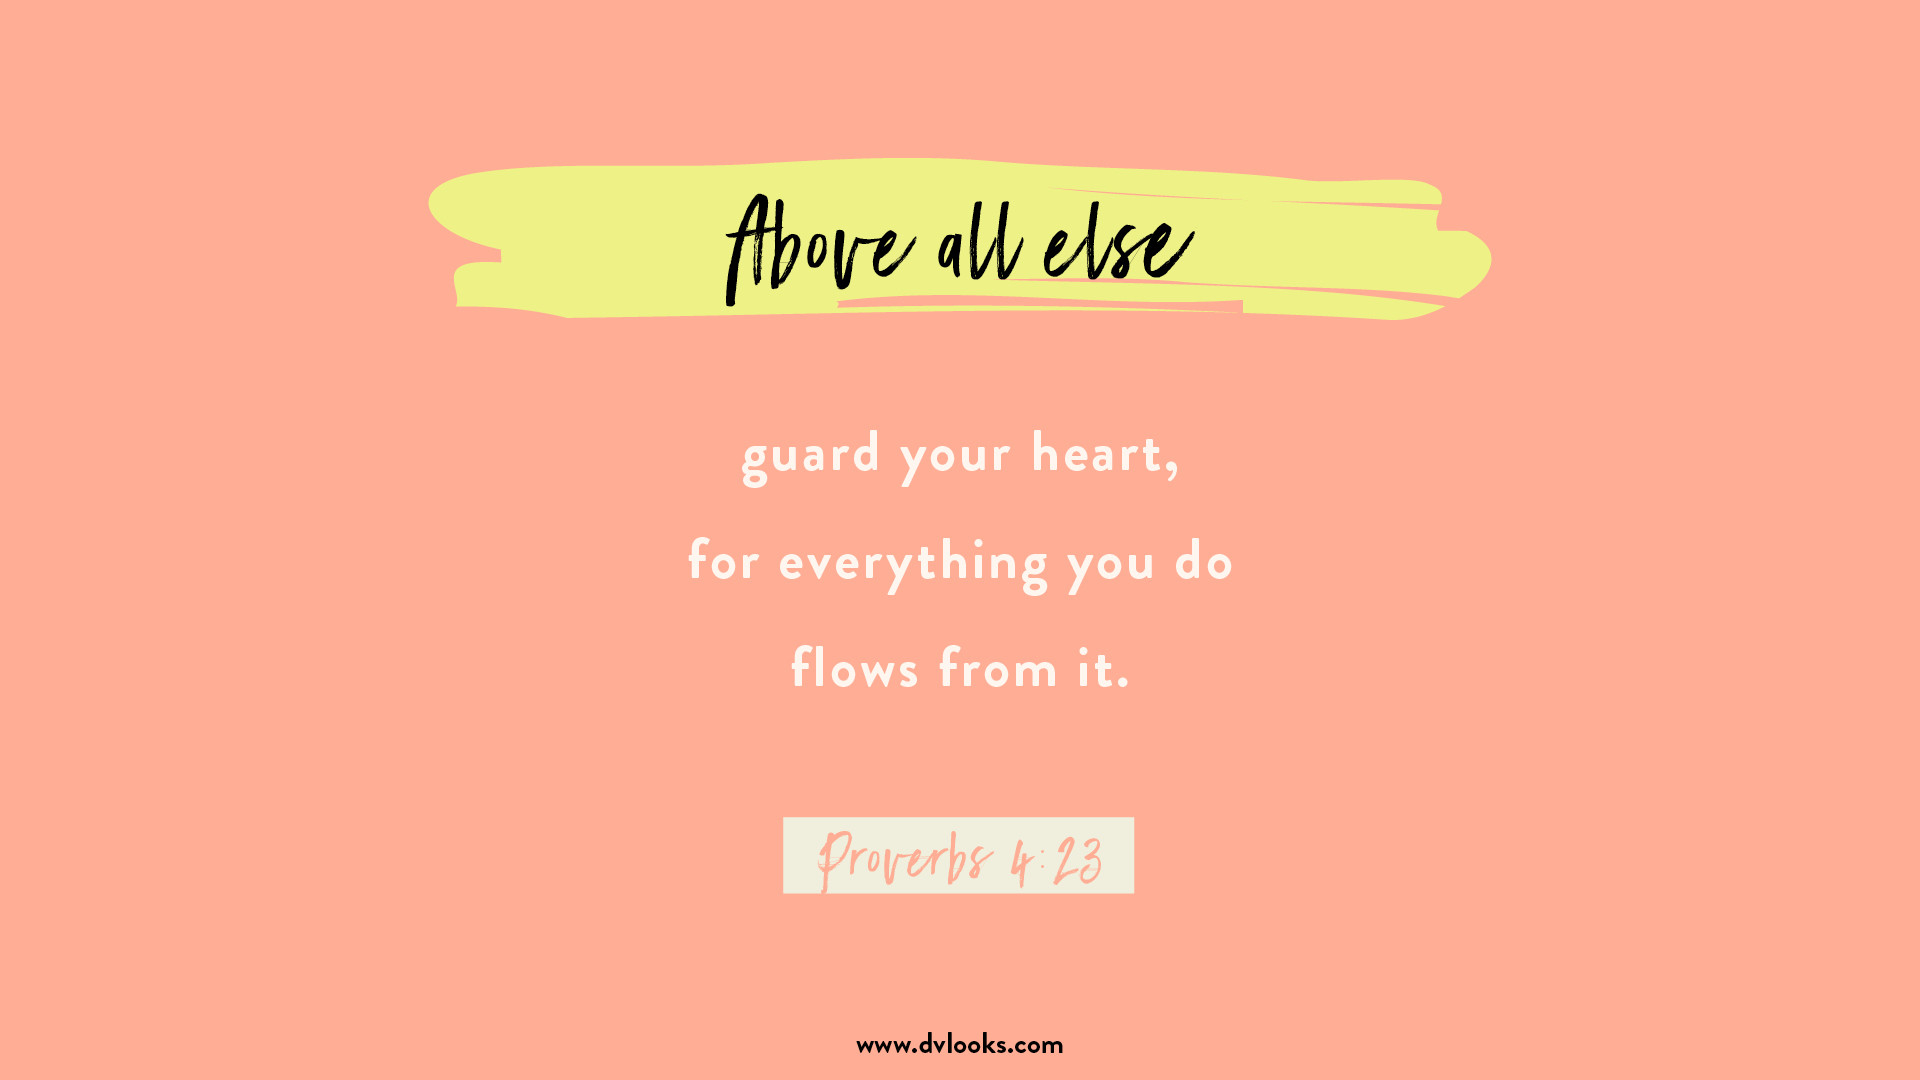 Cute Bible Verse Wallpaper Posted By Samantha Sellers